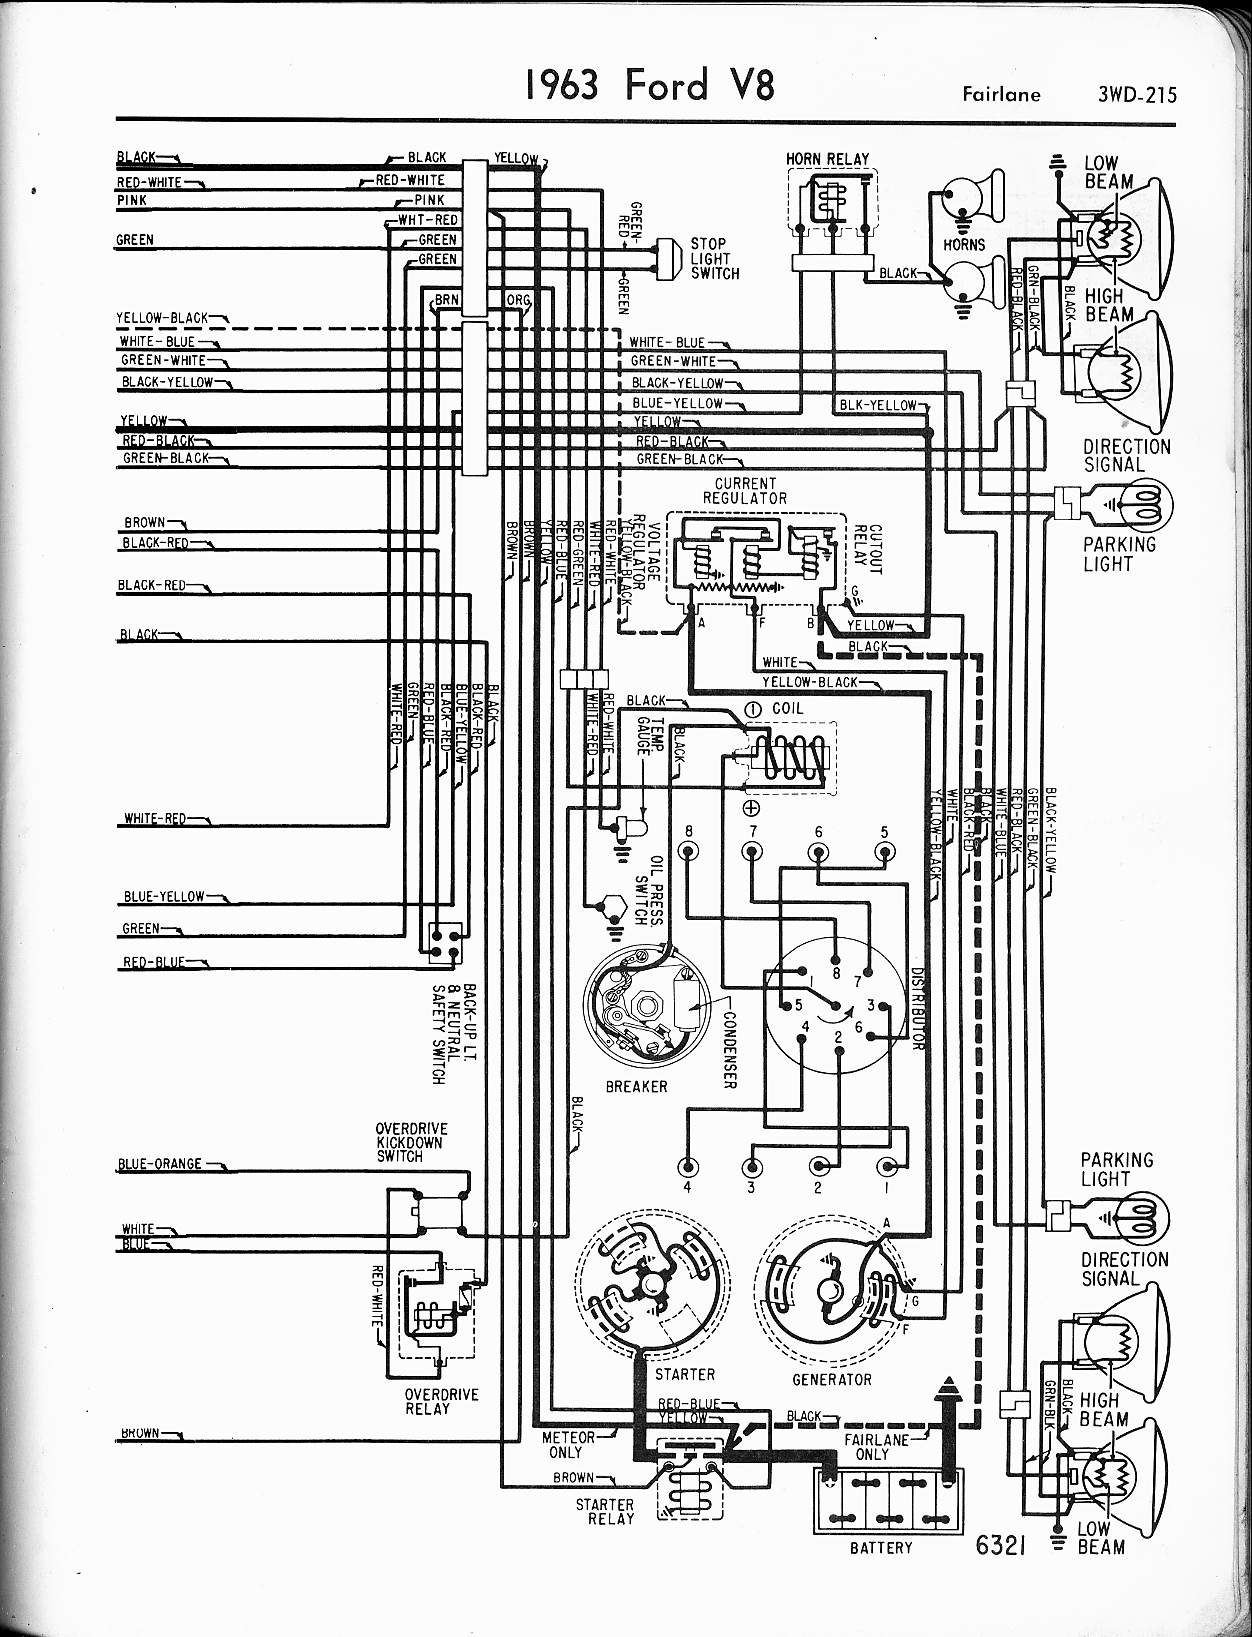 56 ford fairlane wiring diagram meller's